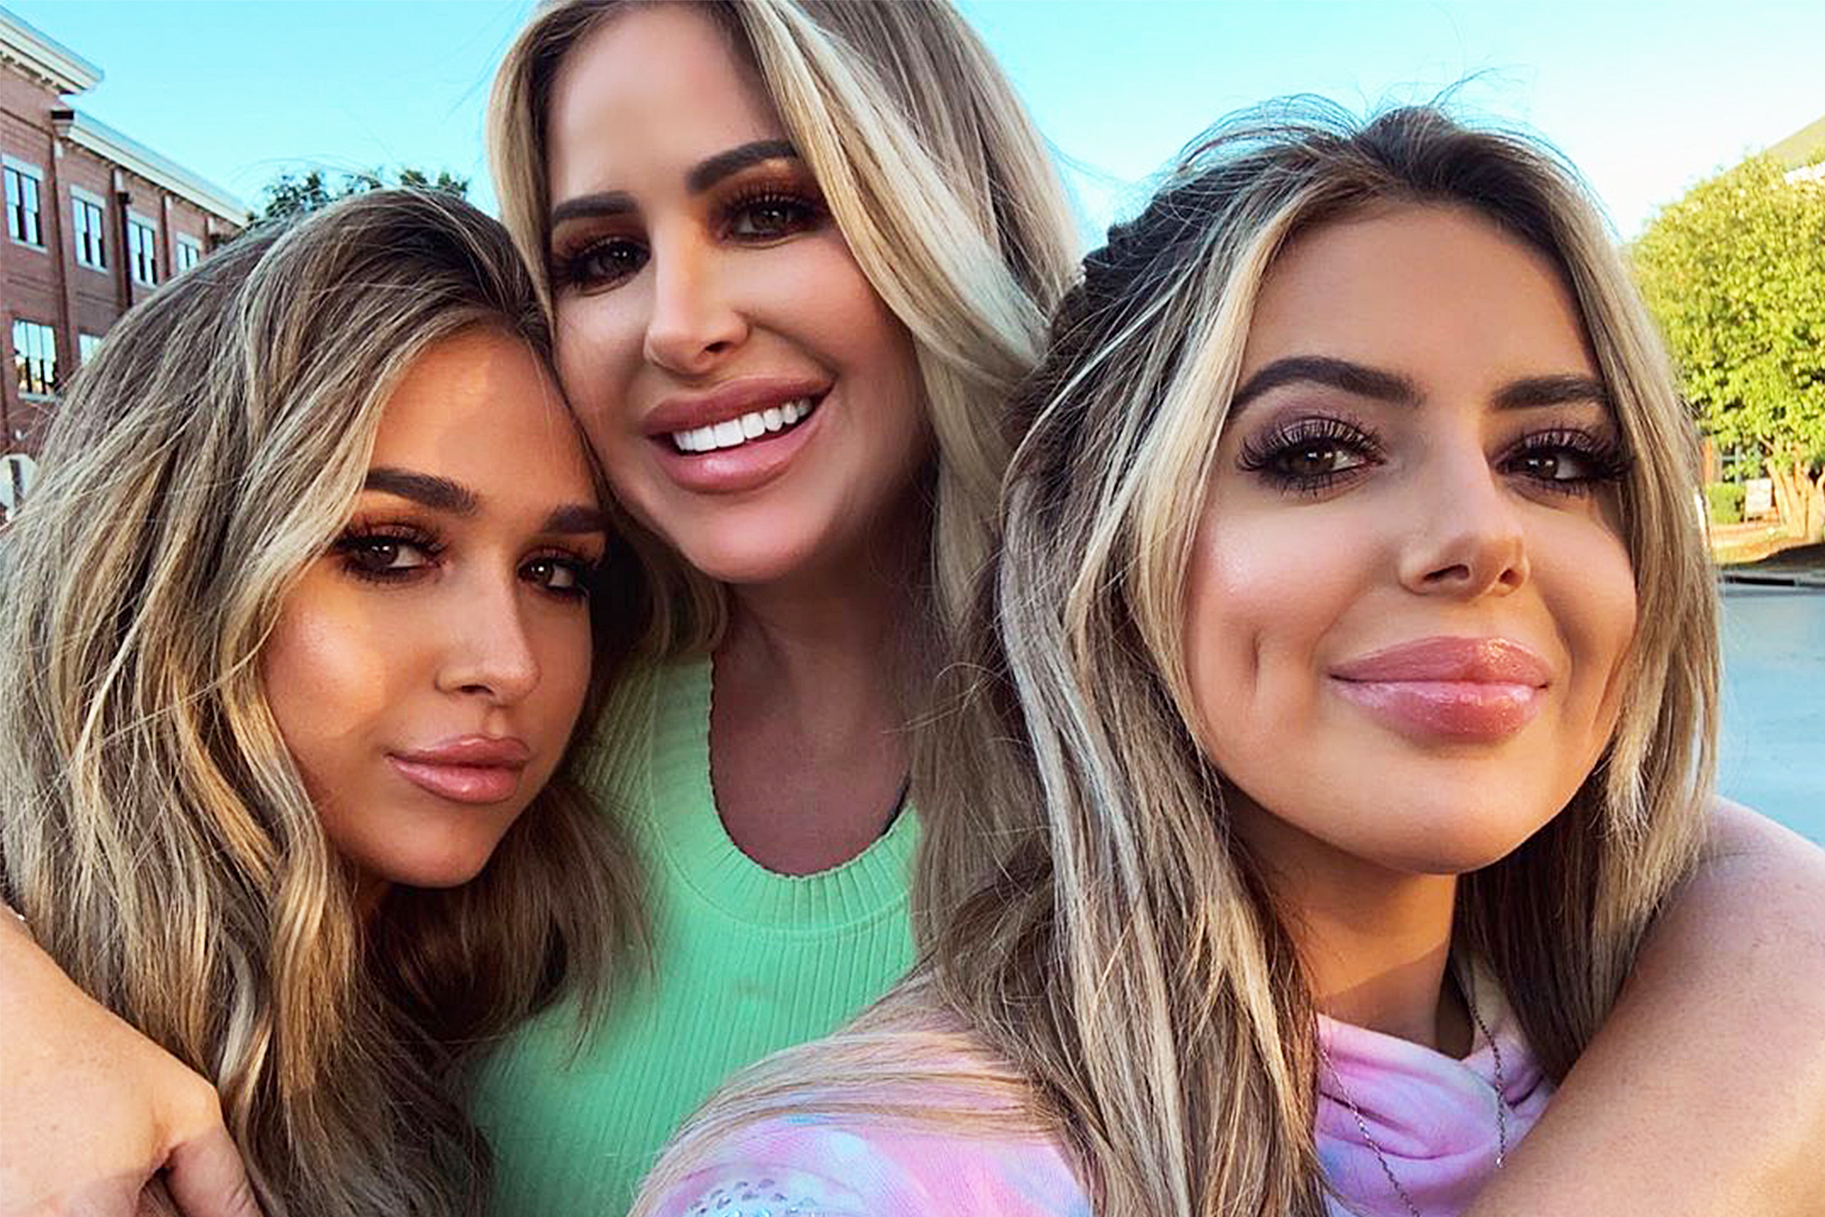 Kim Zolciak Ariana Brielle Vacation